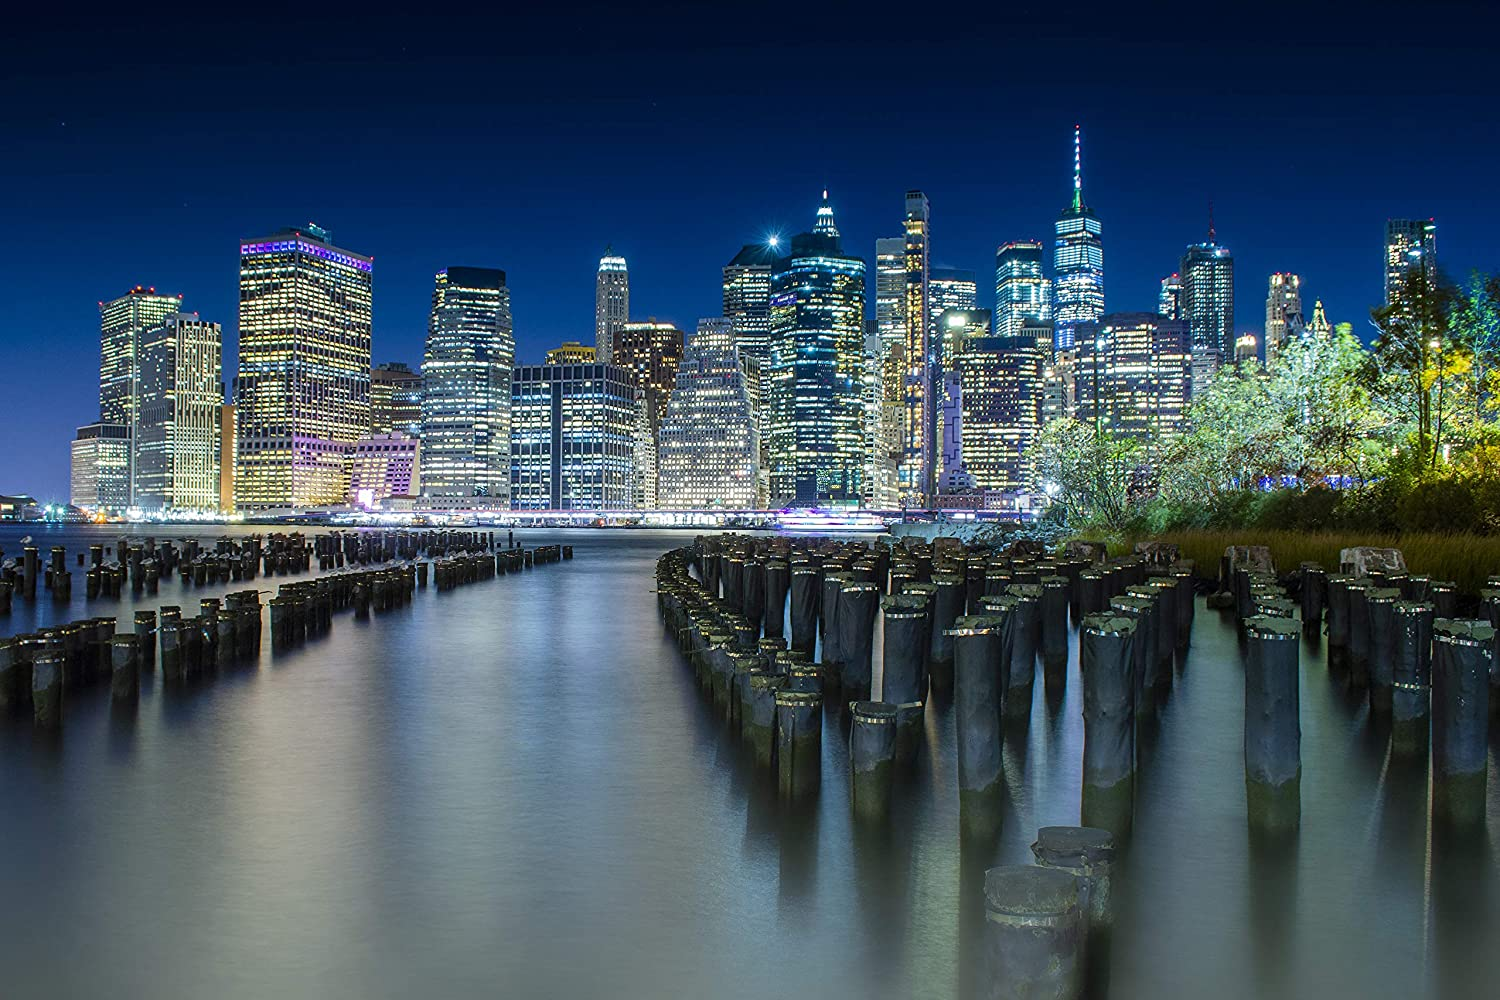 Amazon Com New York City Skyline By Night On Quality Canvas Unique View Of Downtown Manhattan From Brooklyn Perfect Water Reflection In A Clear Navy Blue Night Sky And Shiny Skyscrapers 24x36 Posters